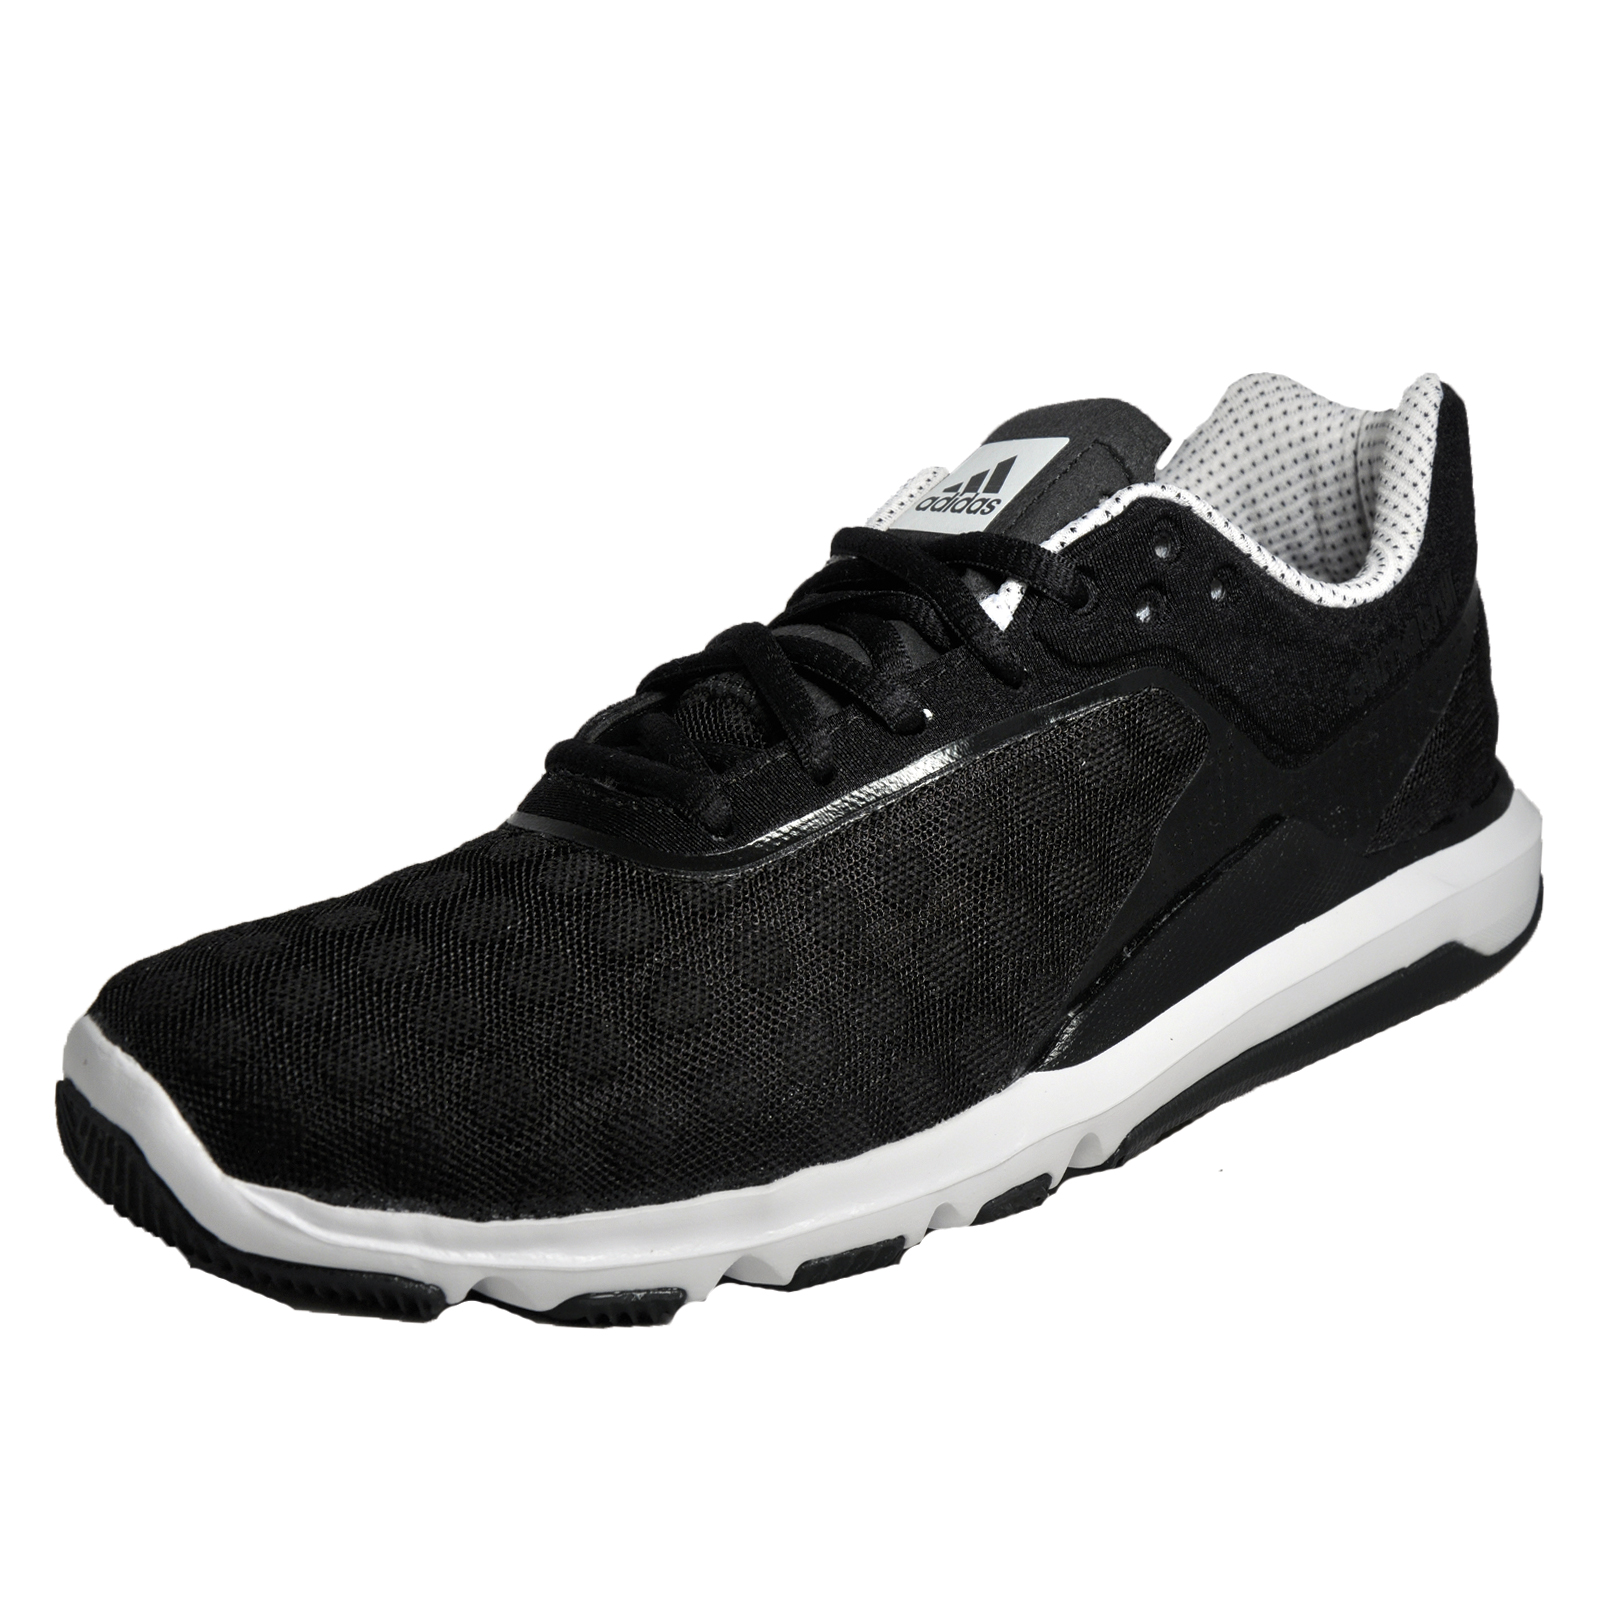 759ce603c15b Details about Adidas Adipure 360.3 CC Mens Premium Running Shoes Fitness  Gym Trainers Black